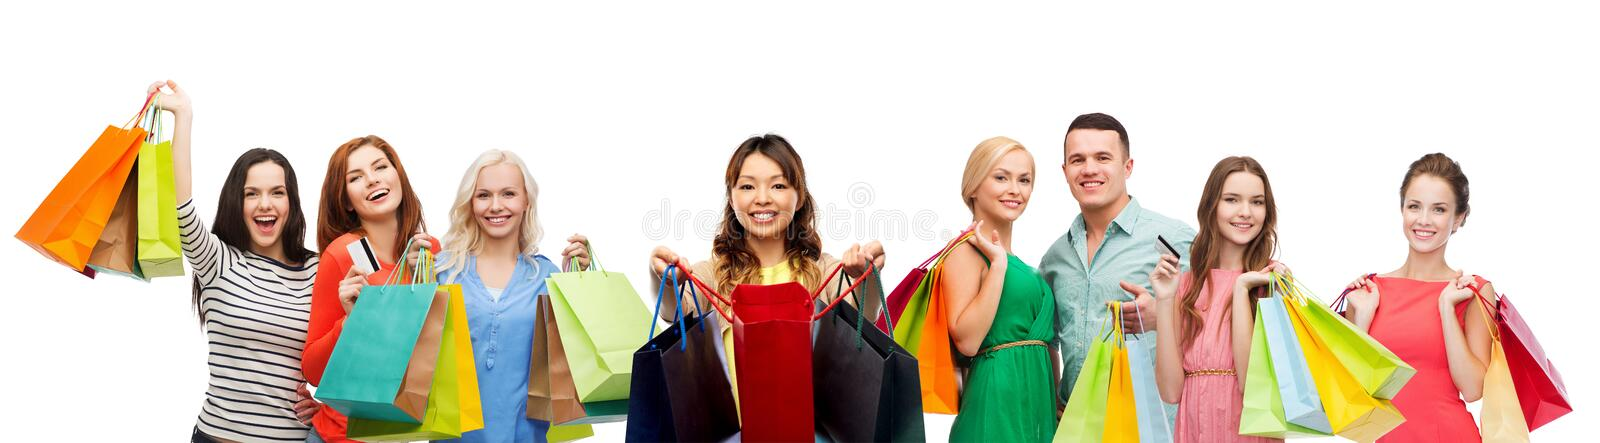 Asian woman with shopping bags and people royalty free stock photos